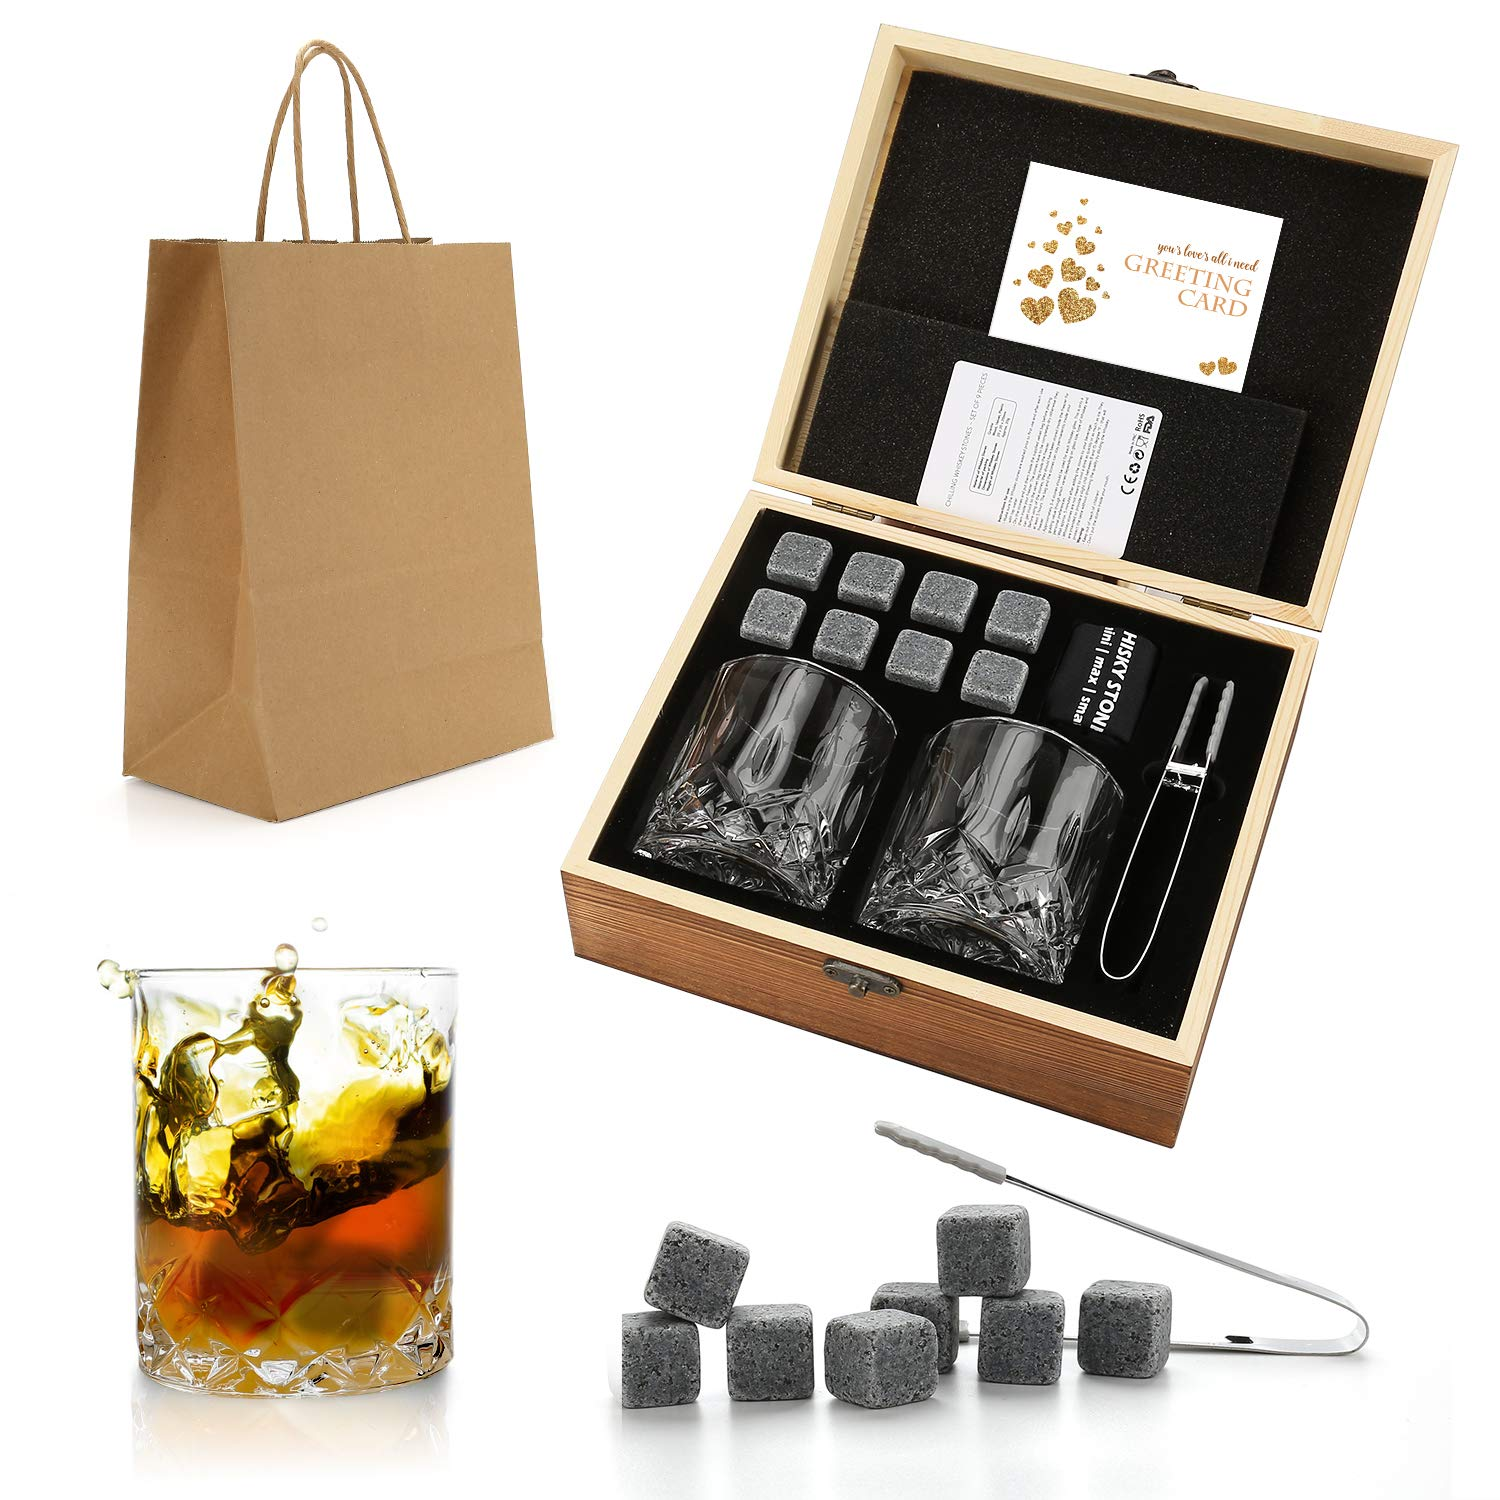 Whiskey Stones Gift Set - Whiskey Glass Set of 2 - Granite Chilling Whiskey Rocks - Scotch Bourbon Whiskey Glass Gift Box Set - Best Drinking Gifts for Men Dad Husband Birthday Party Holiday Present